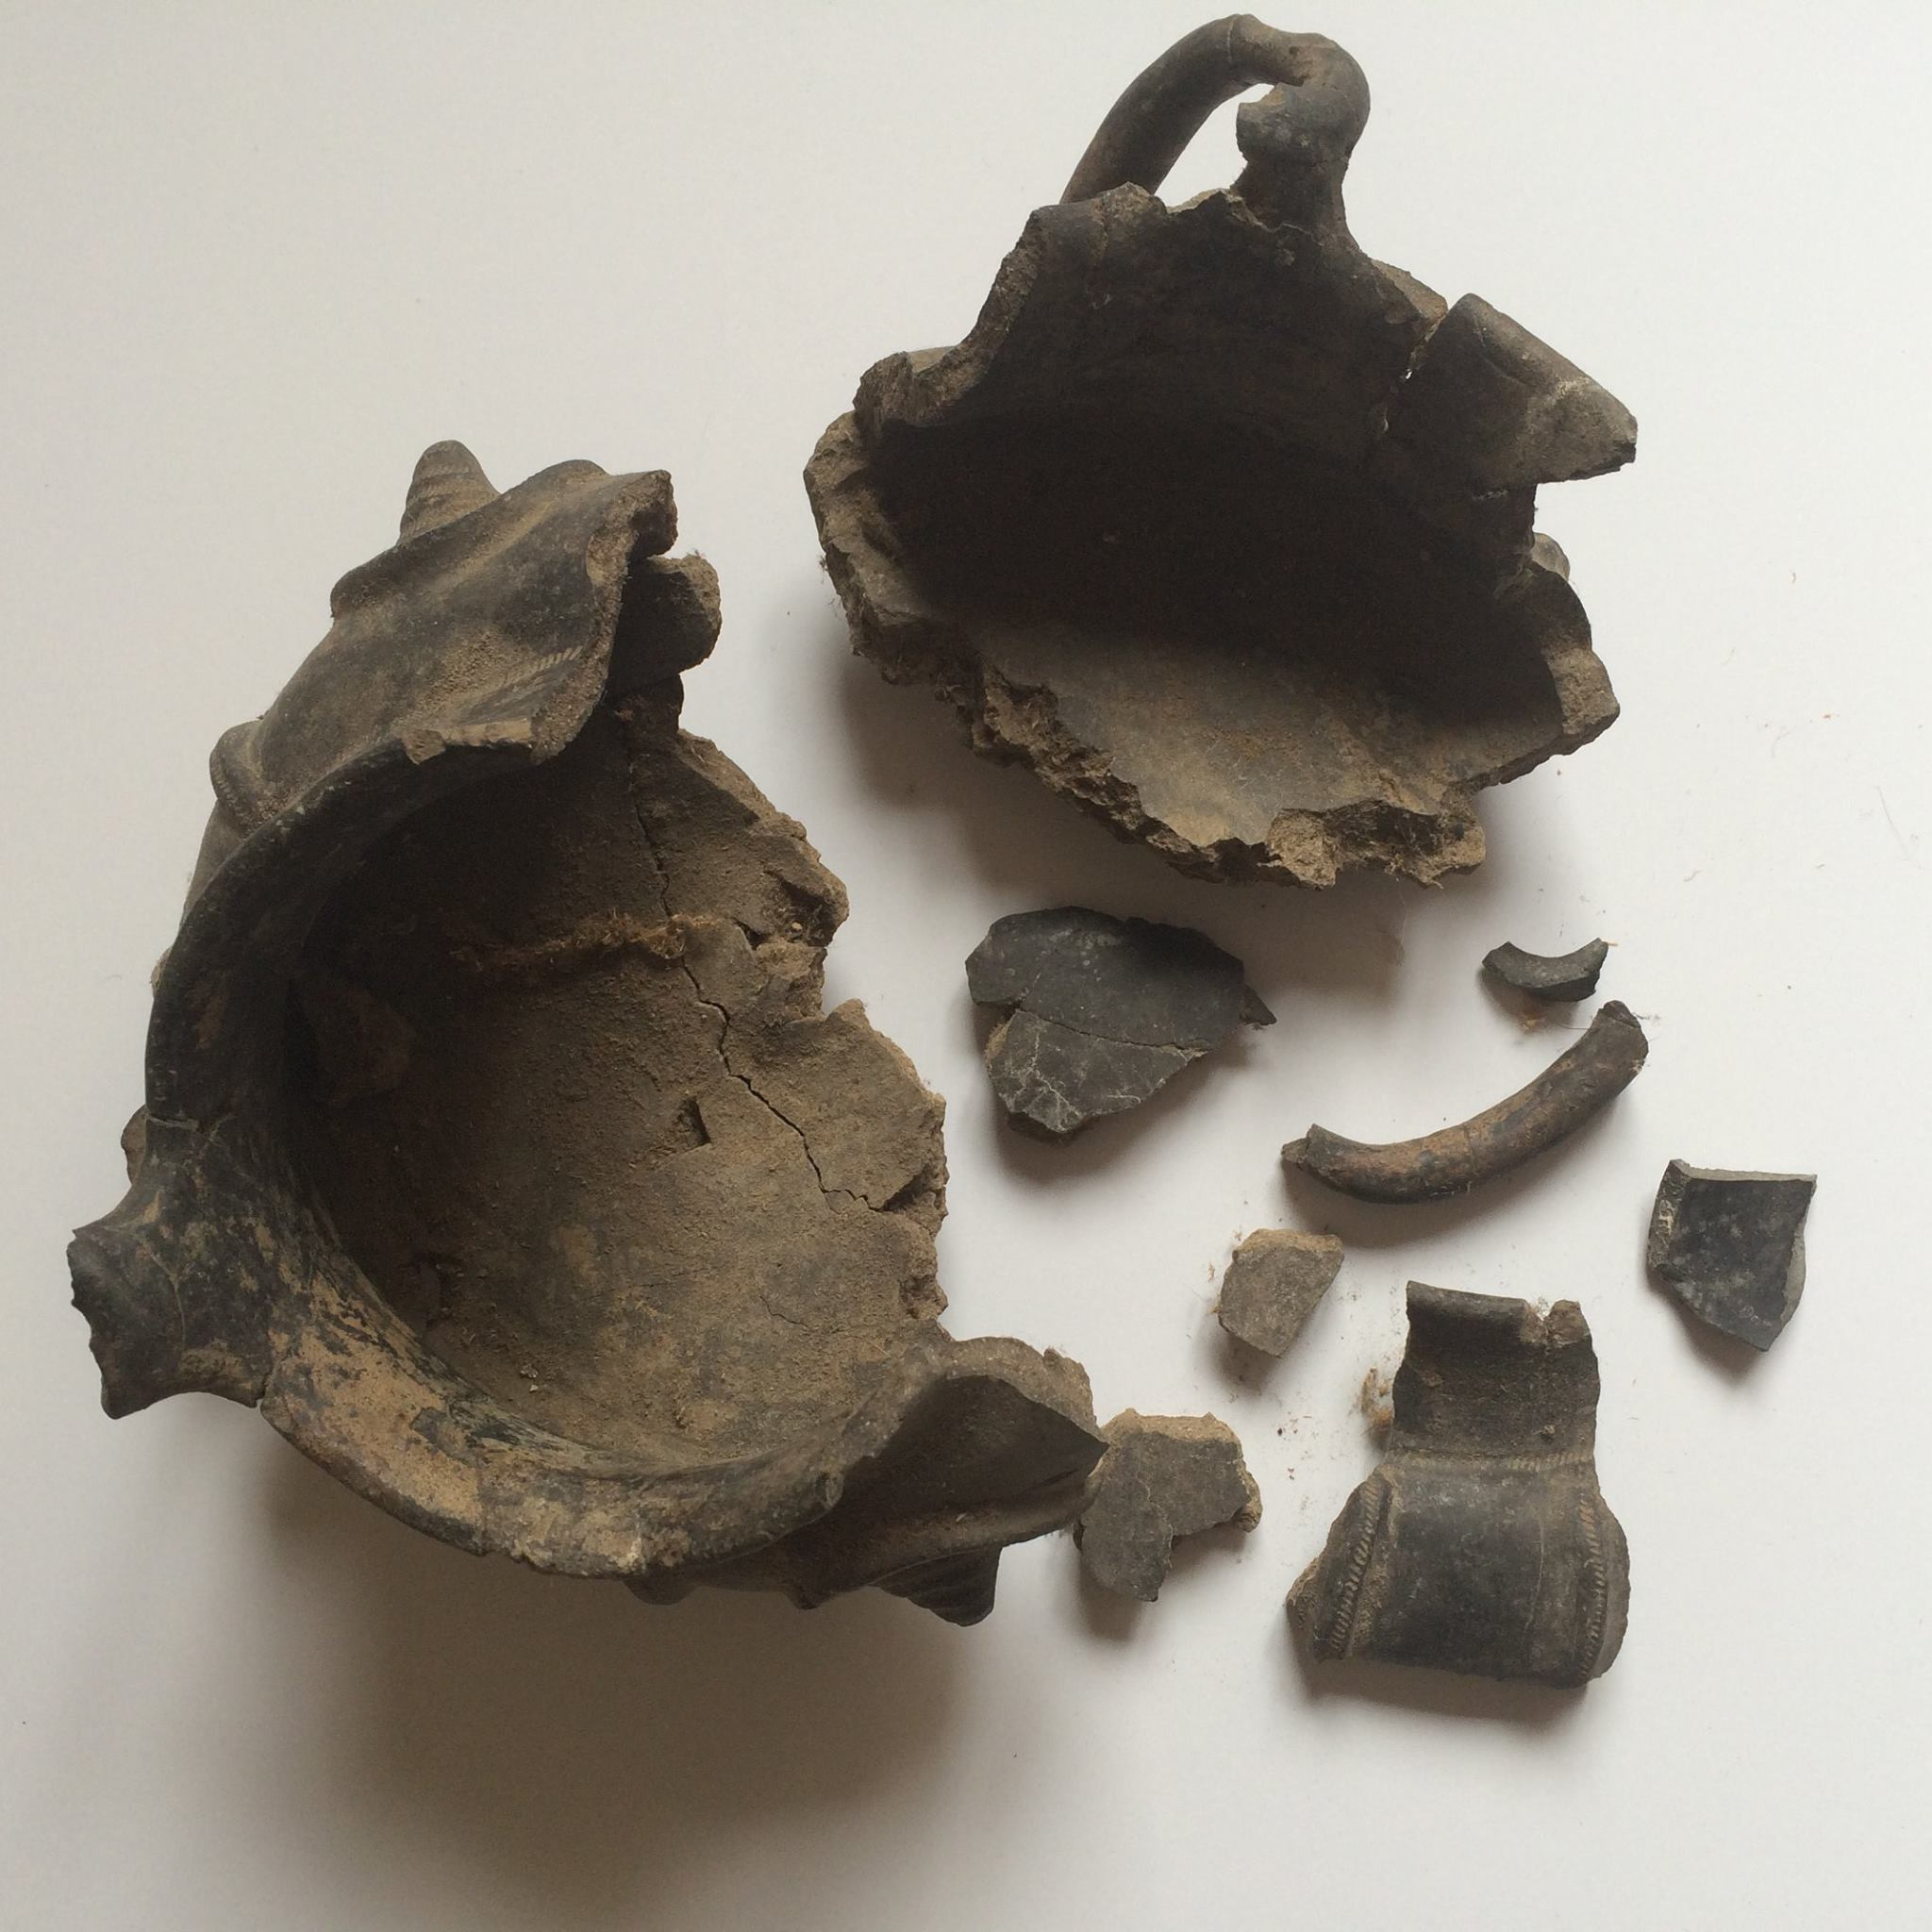 Shattered Etruscan pottery before restoration